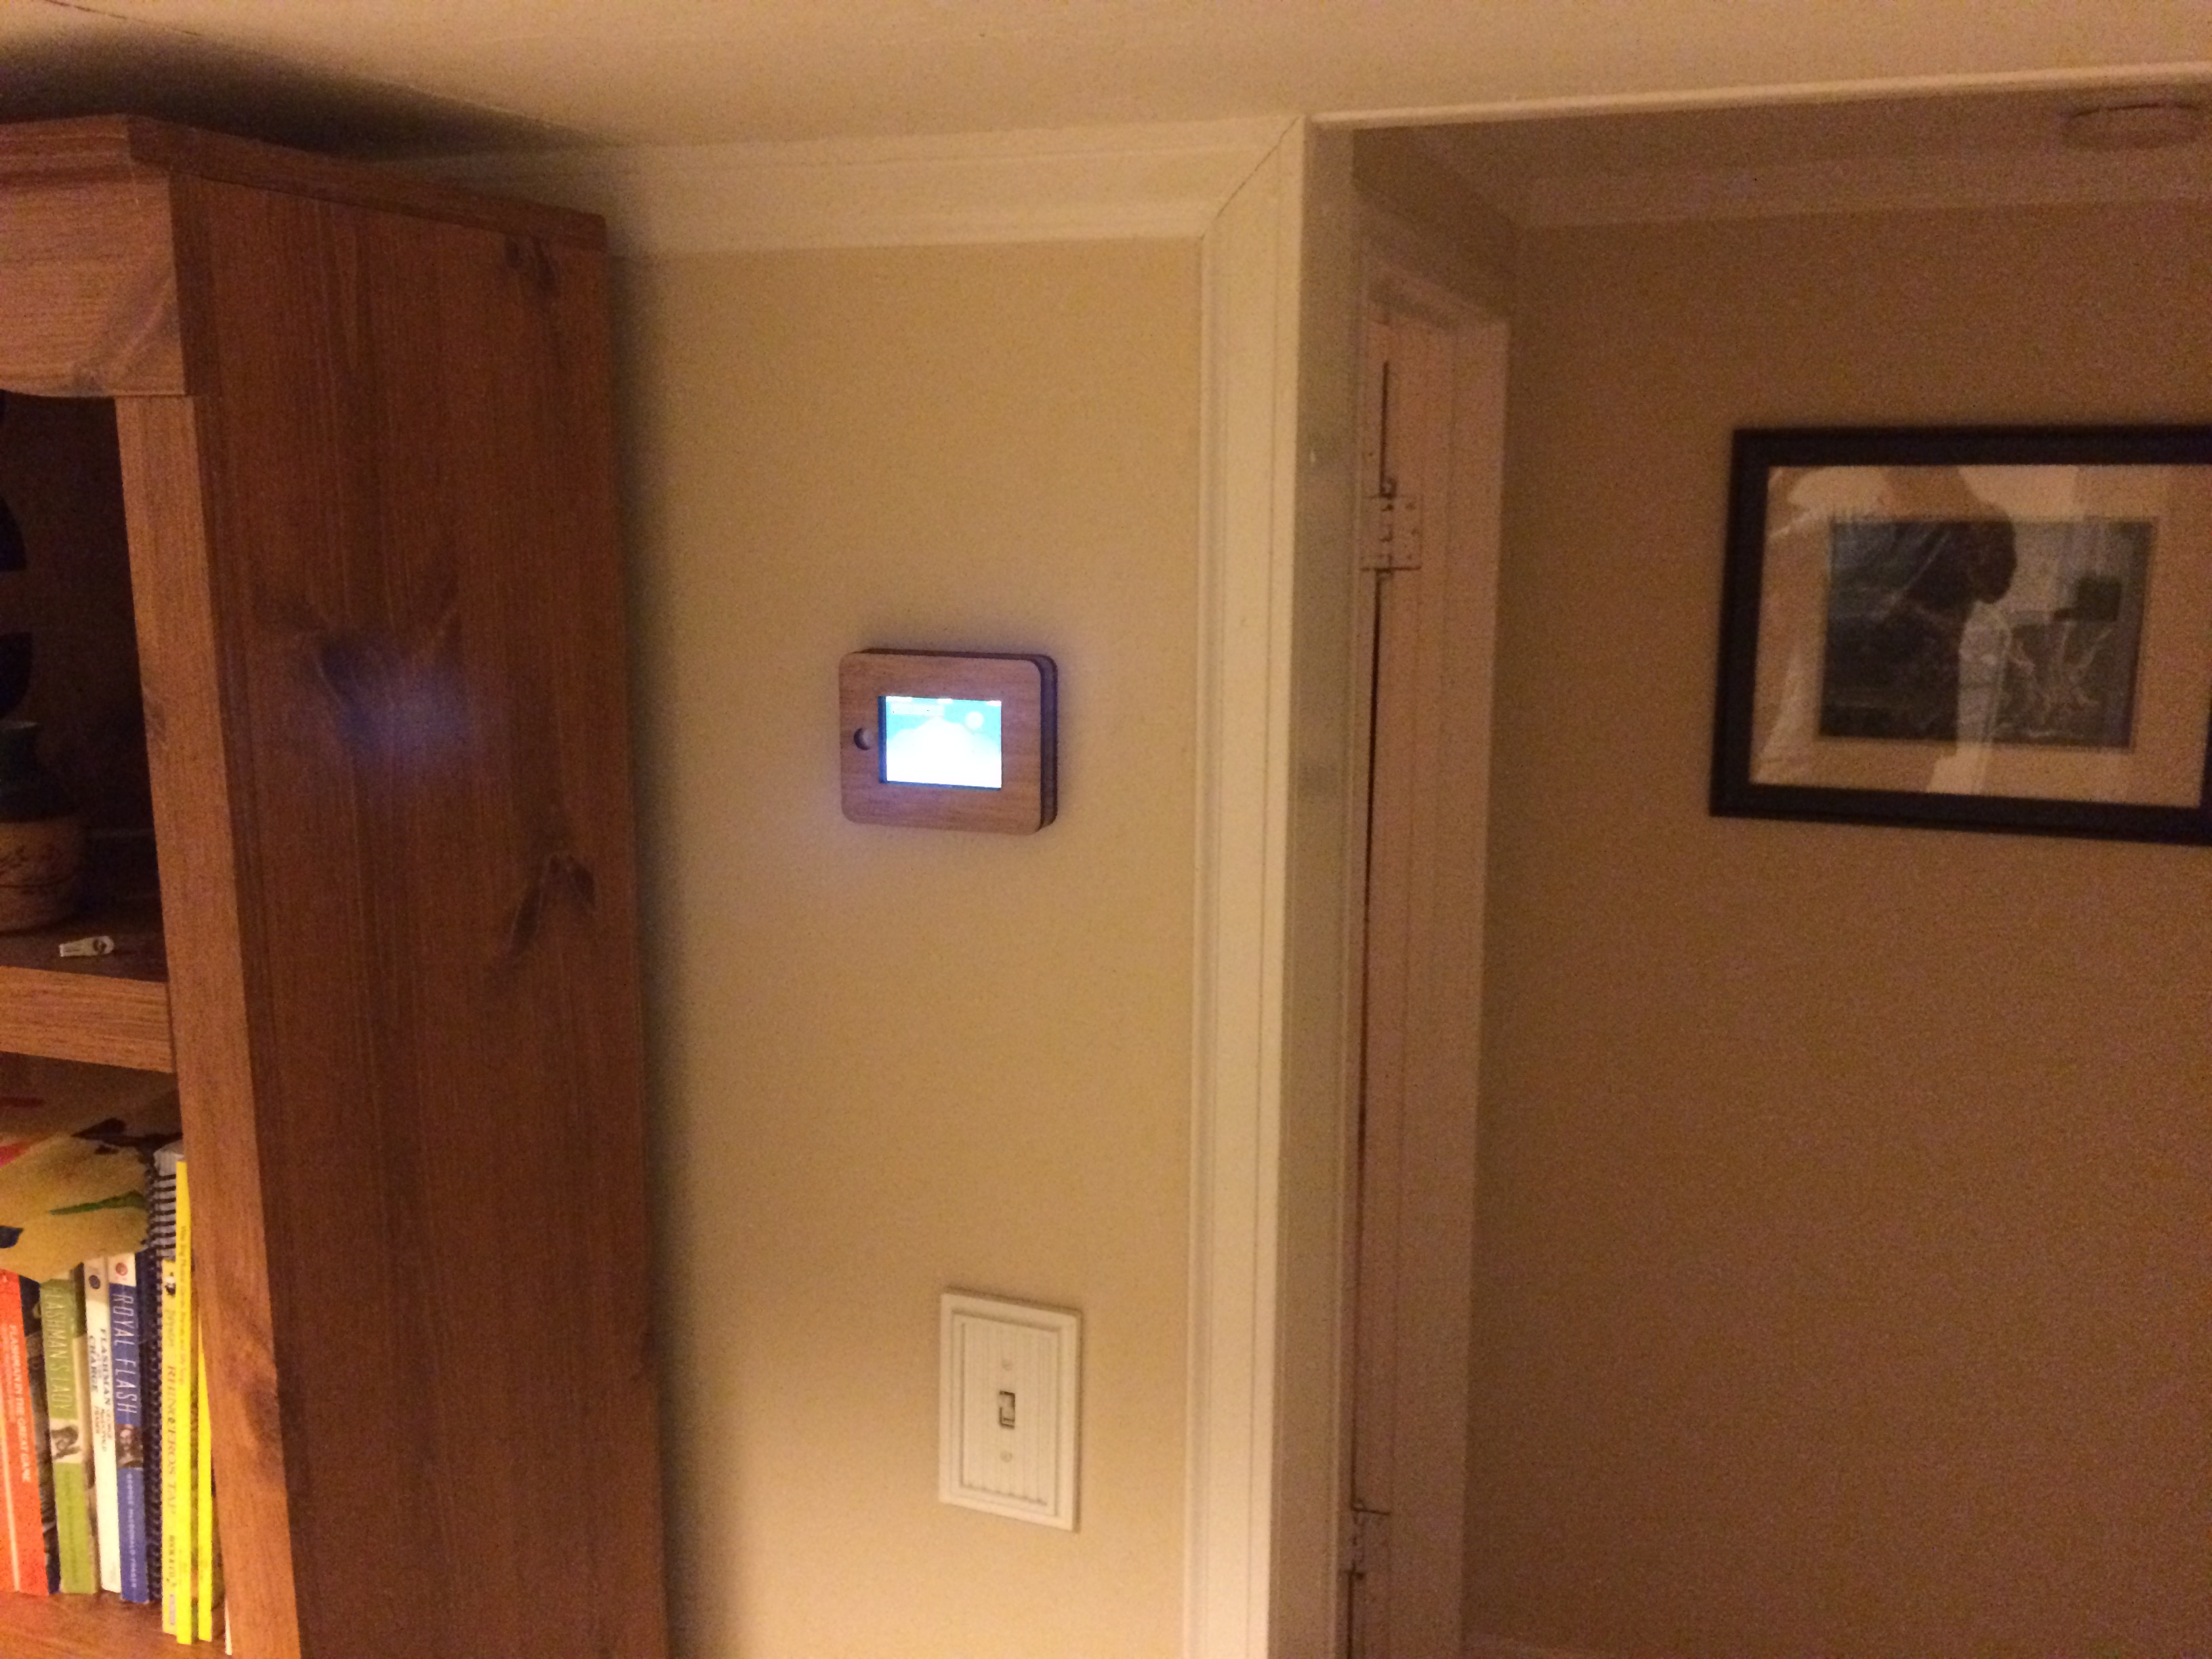 Wall Mounted Iphones For Home Automation Evan Crouch